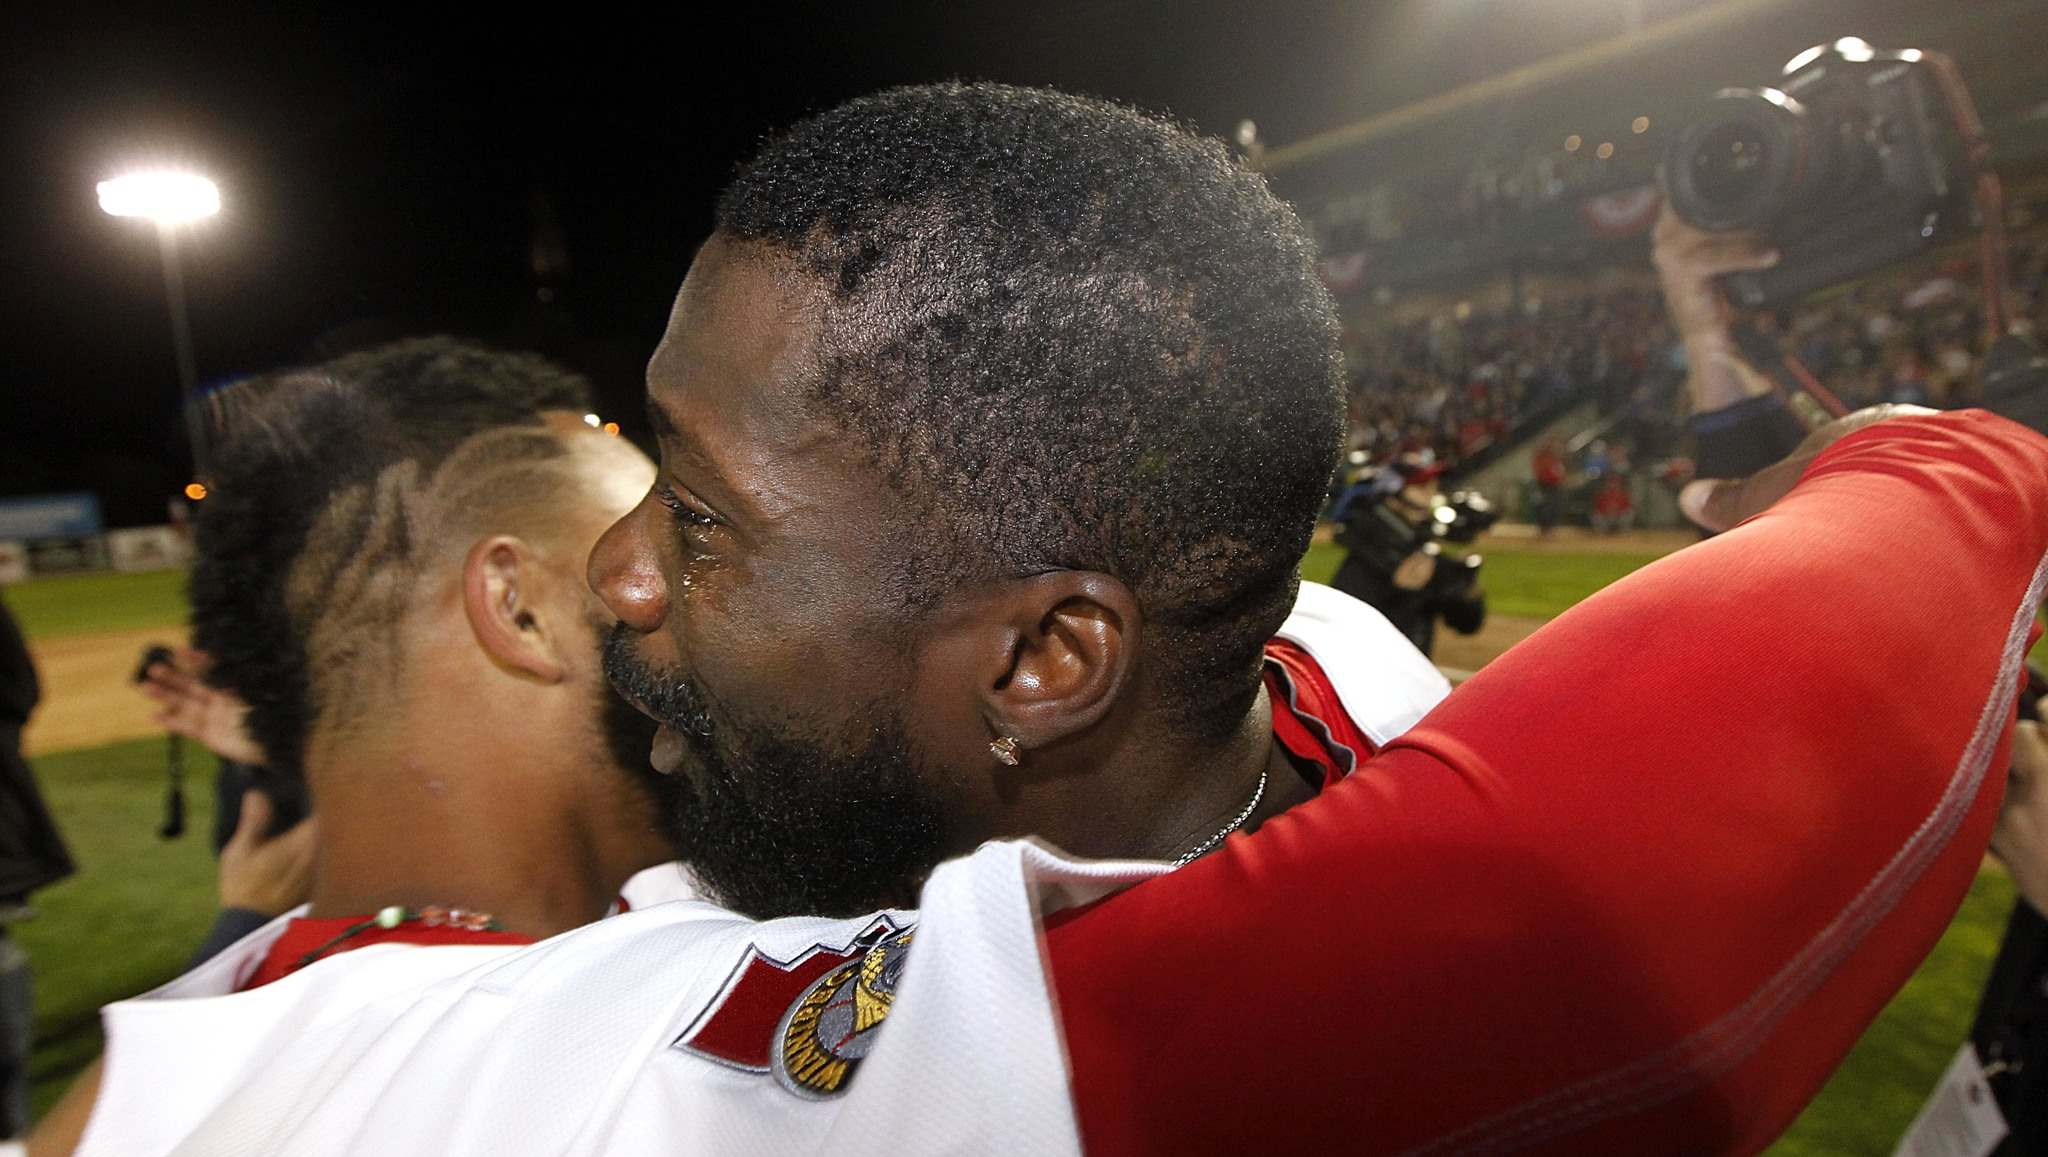 A teary eyed Reggie Abercrombie embraces teammate Victor Capellan after the Winnipeg Goldeyes took the American Association Championship over the Wichita Wingnuts in September. (Phil Hossack / Winnipeg Free Press files)</p></p>